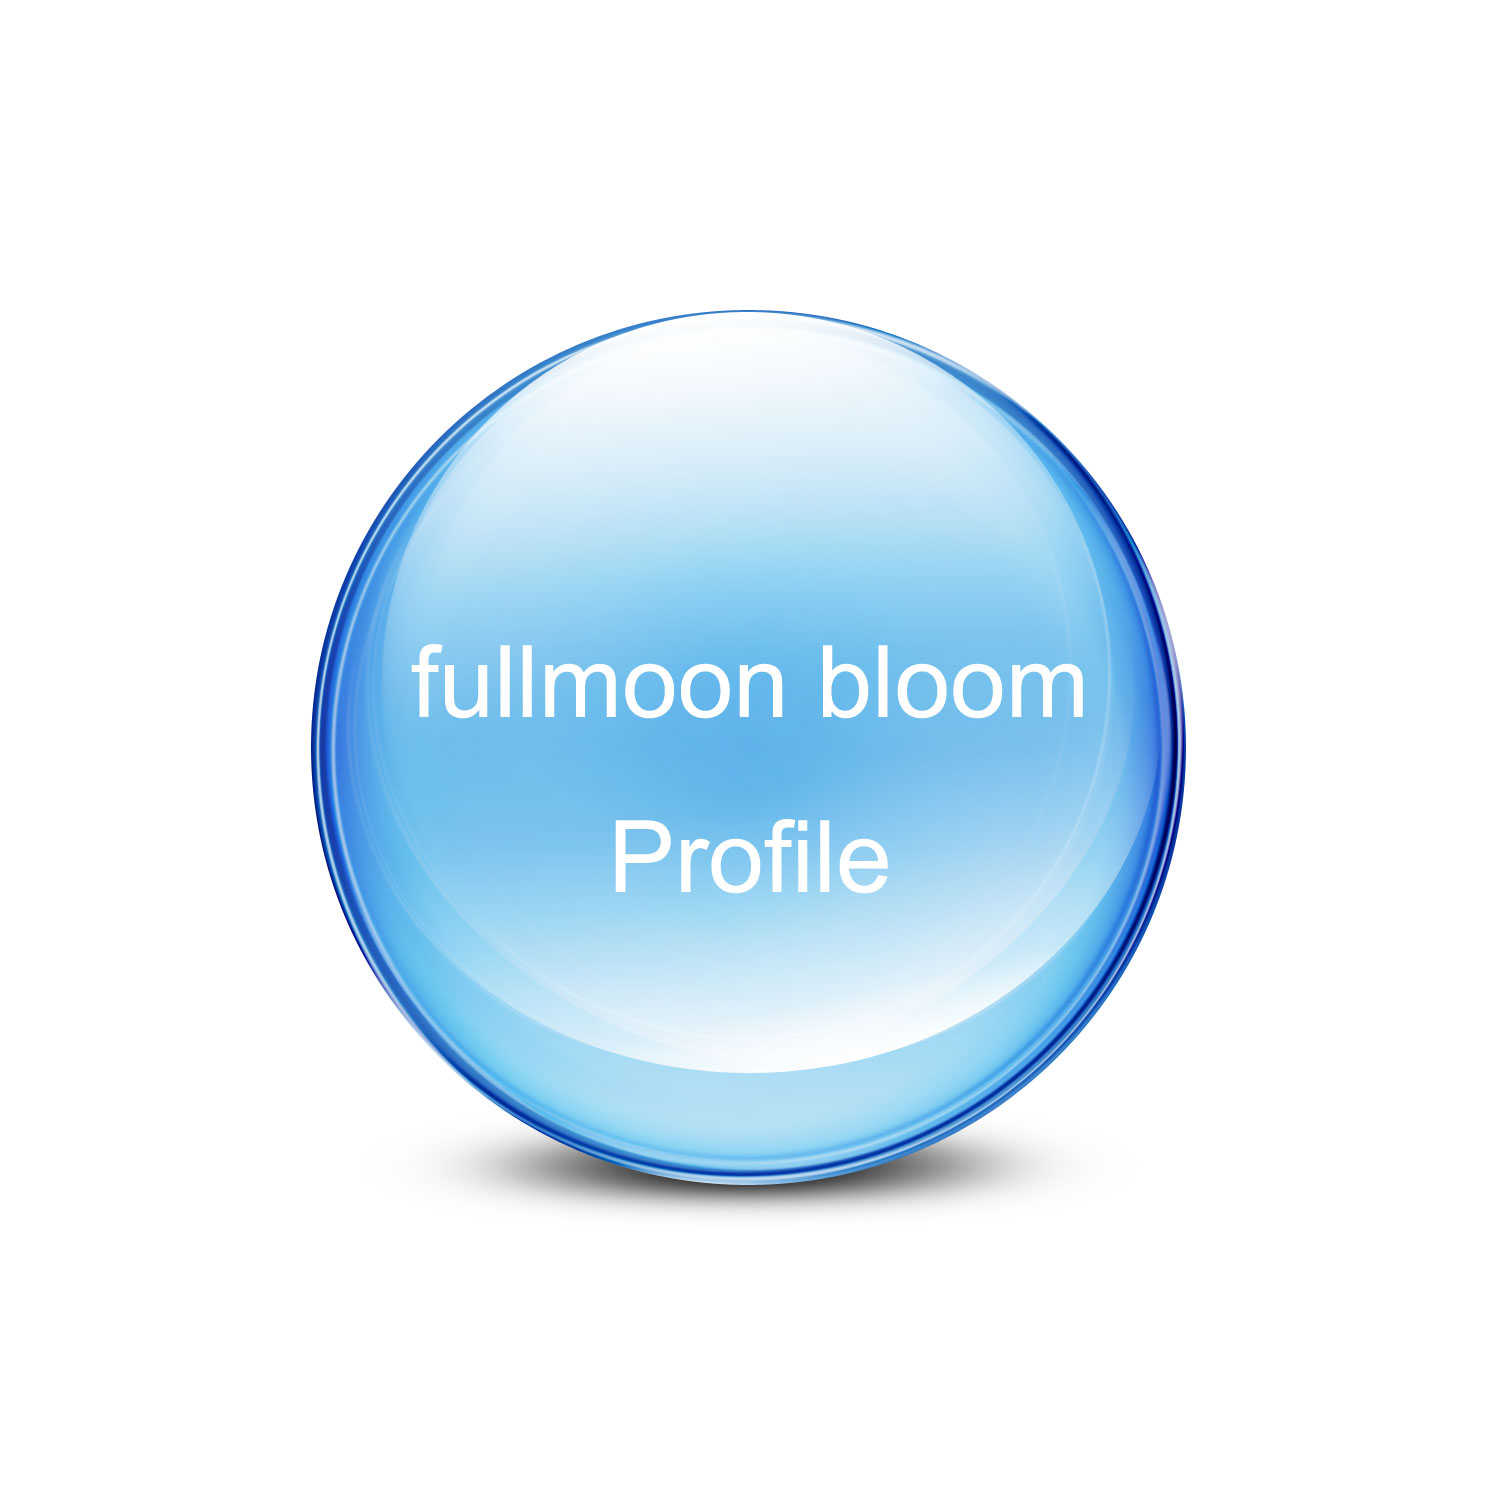 fullmoon bloom plofile